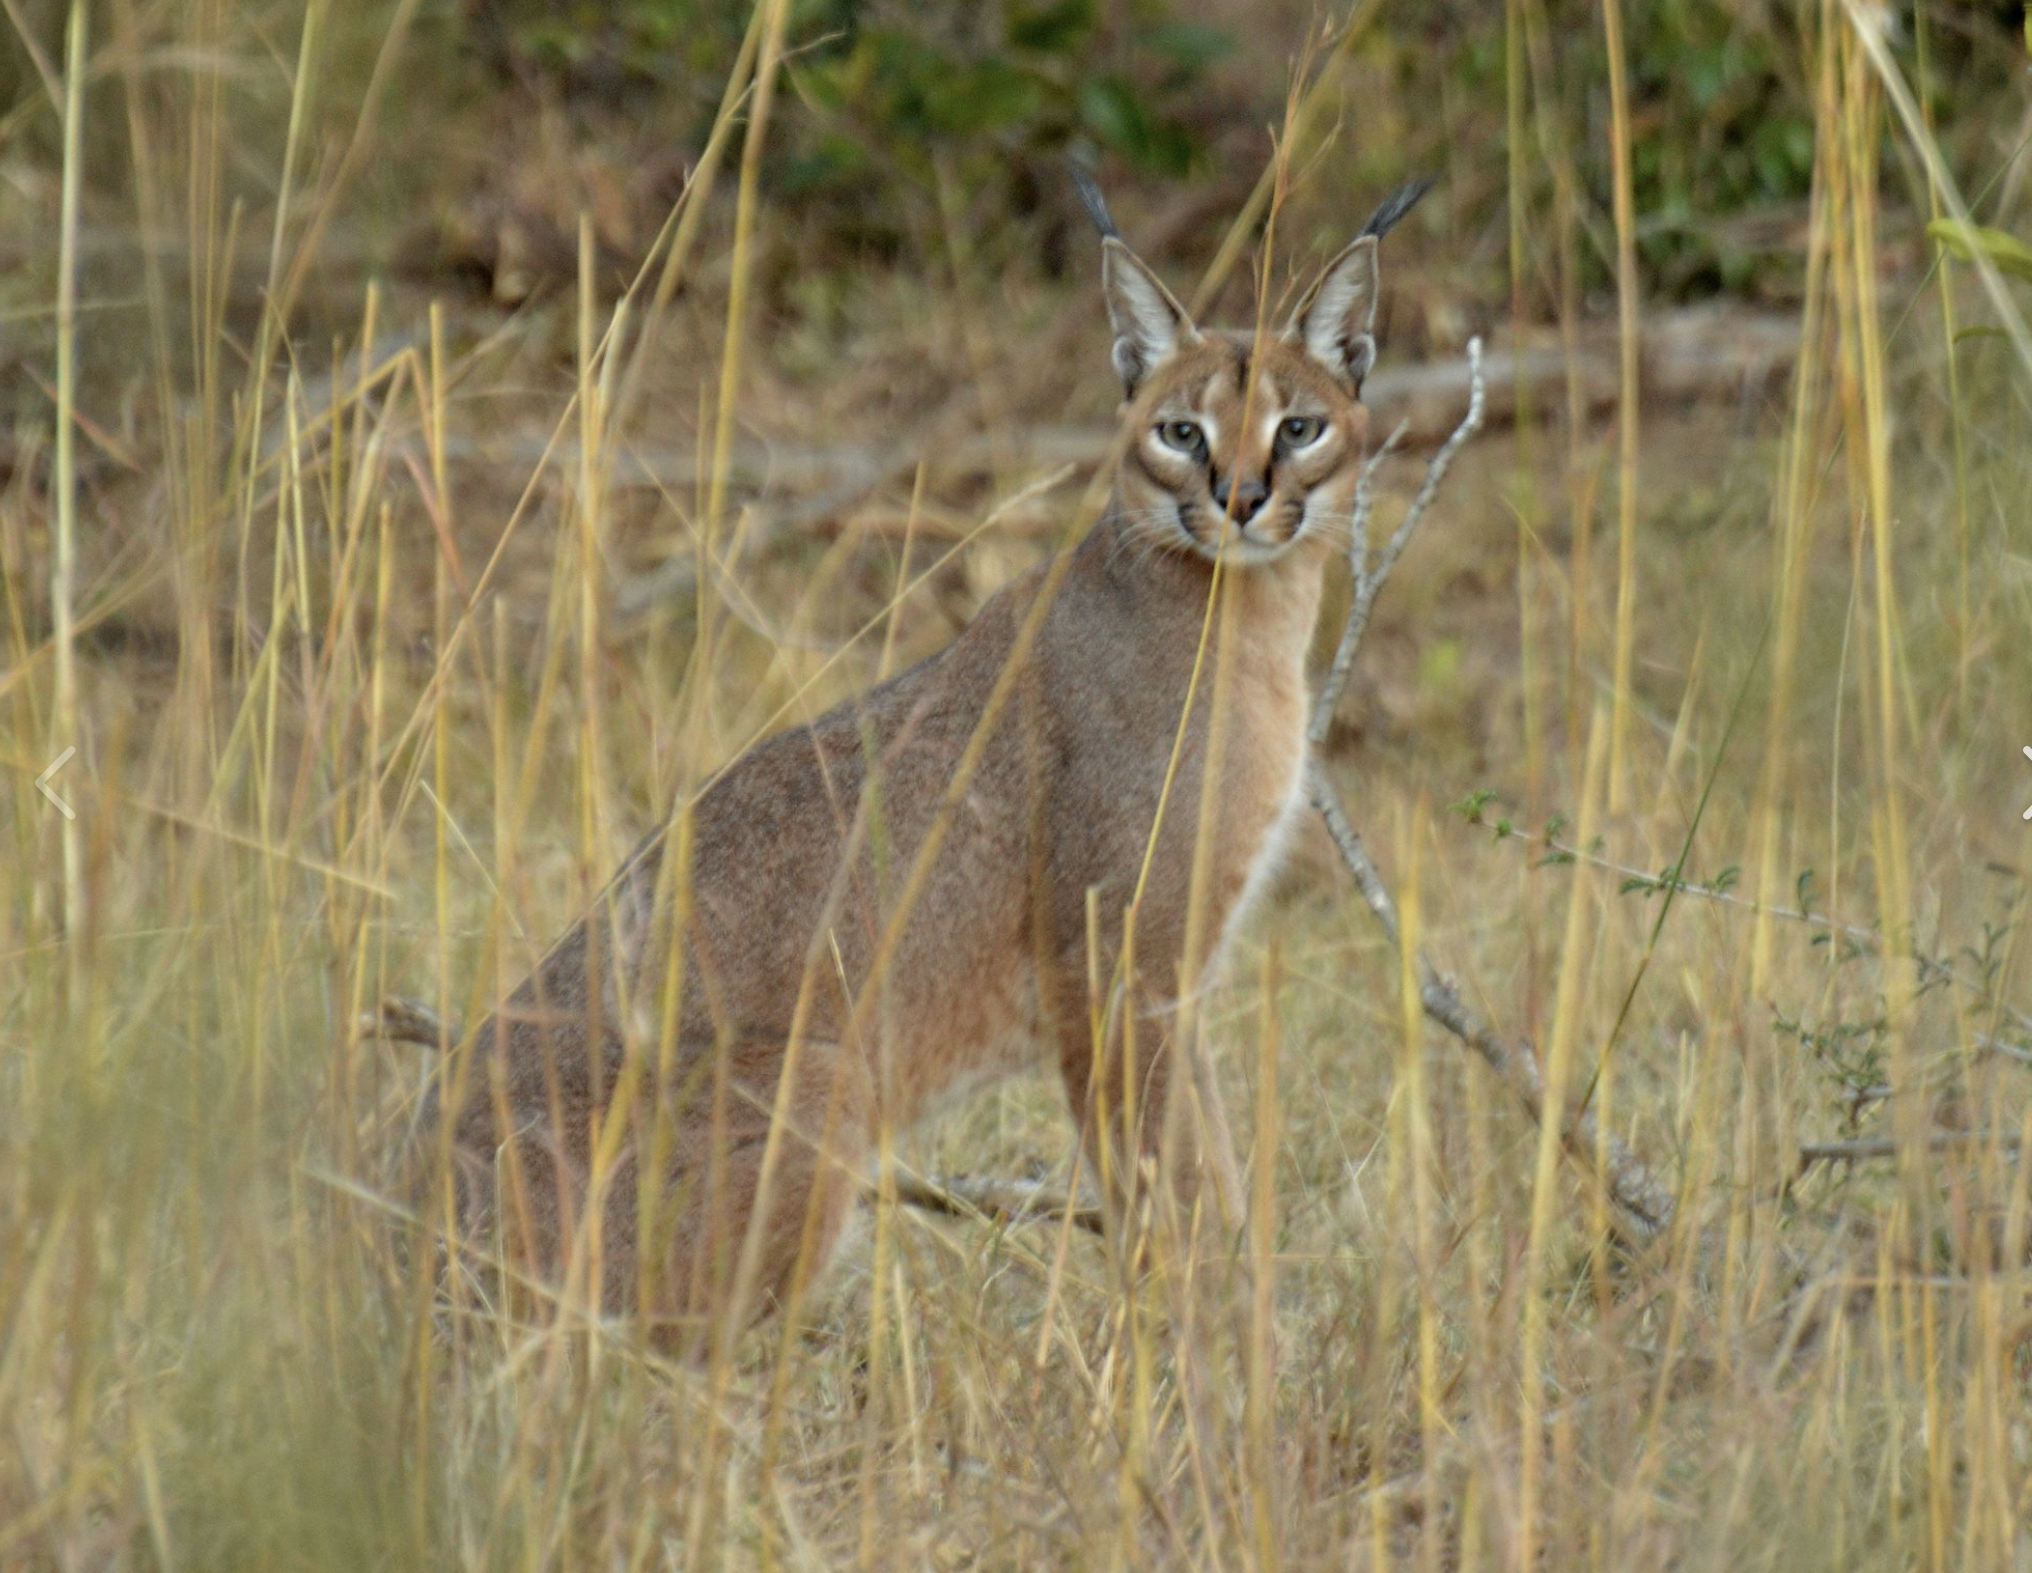 The caracal preys upon small mammals, birds and rodents and can leap higher than 3 metres and catch birds in mid-air